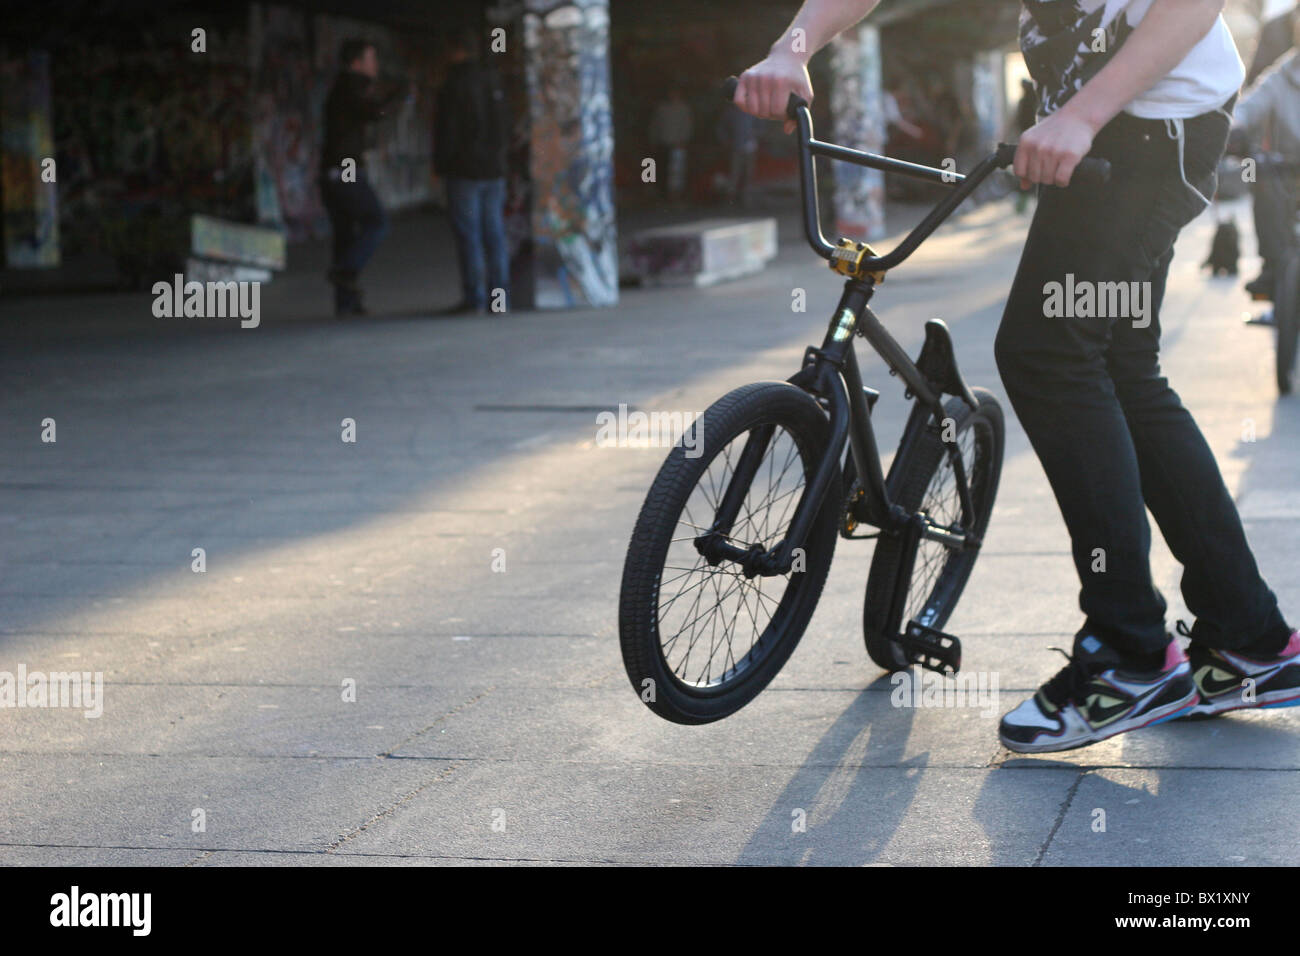 Bmx Shadow Stock Photos & Bmx Shadow Stock Images - Alamy